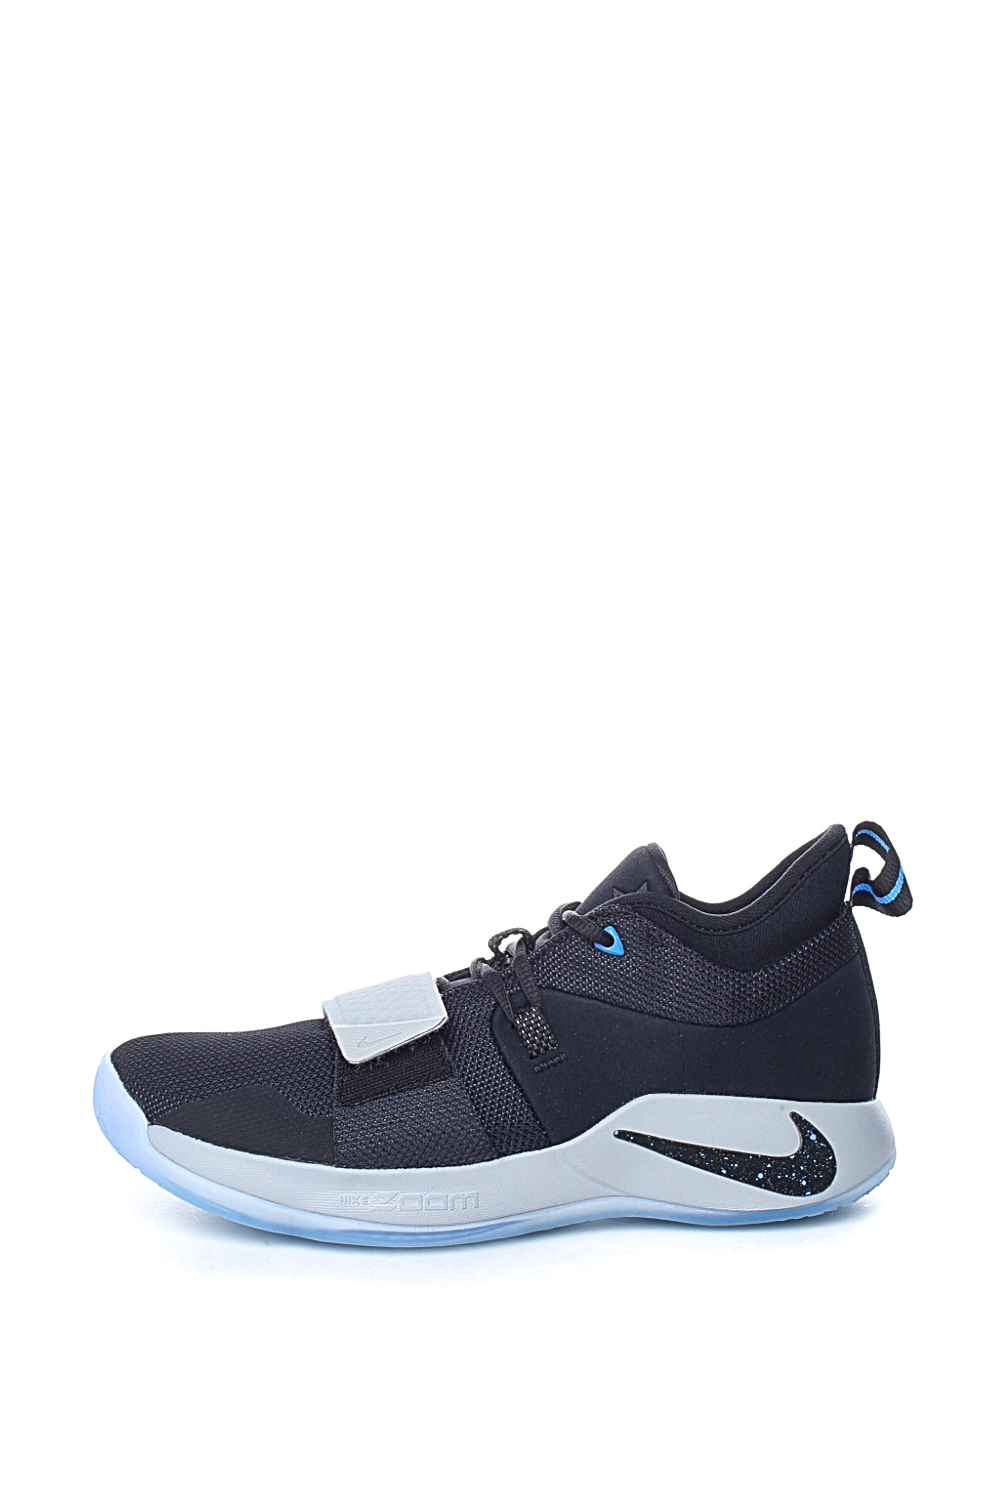 NIKE – Ανδρικά παπούτσια μπάσκετ PG 2.5 NIKE μαύρα